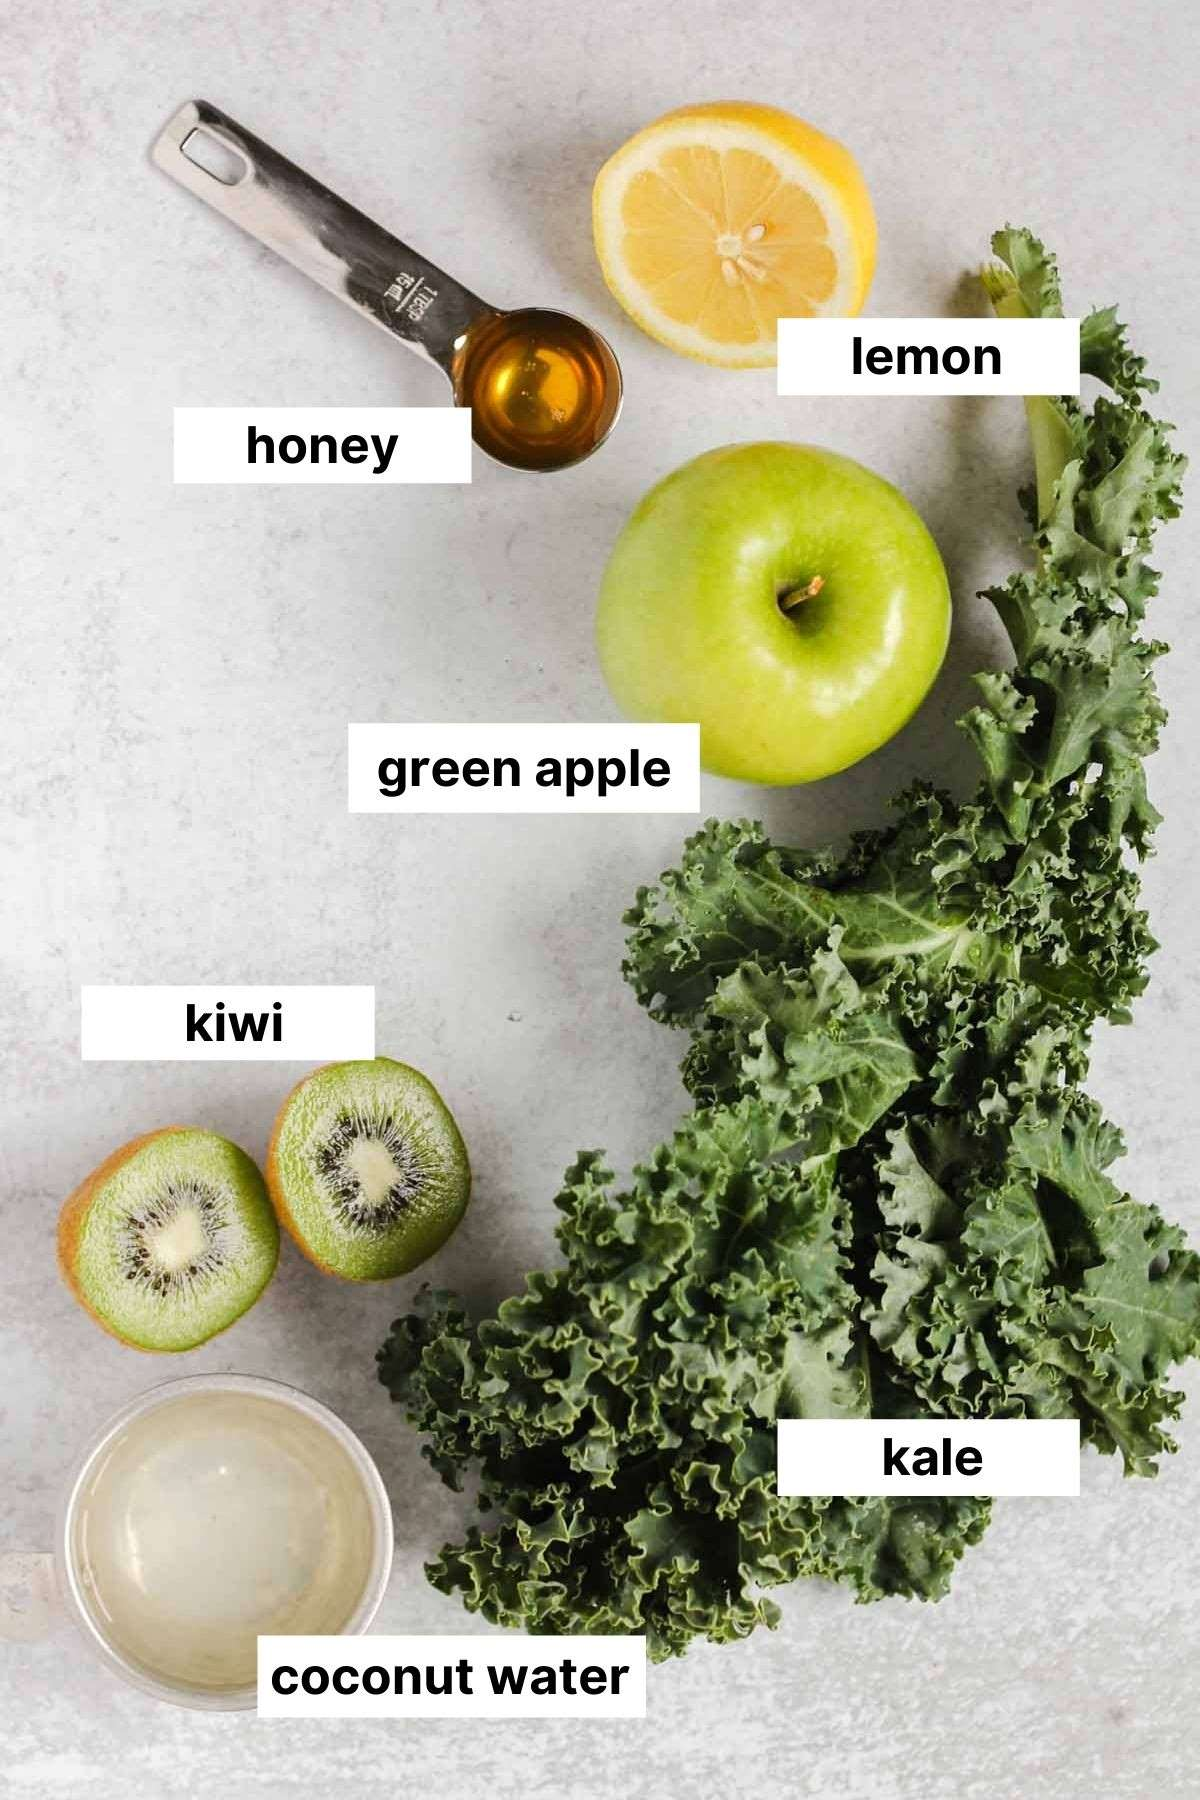 Labeled ingredients for kale smoothie.